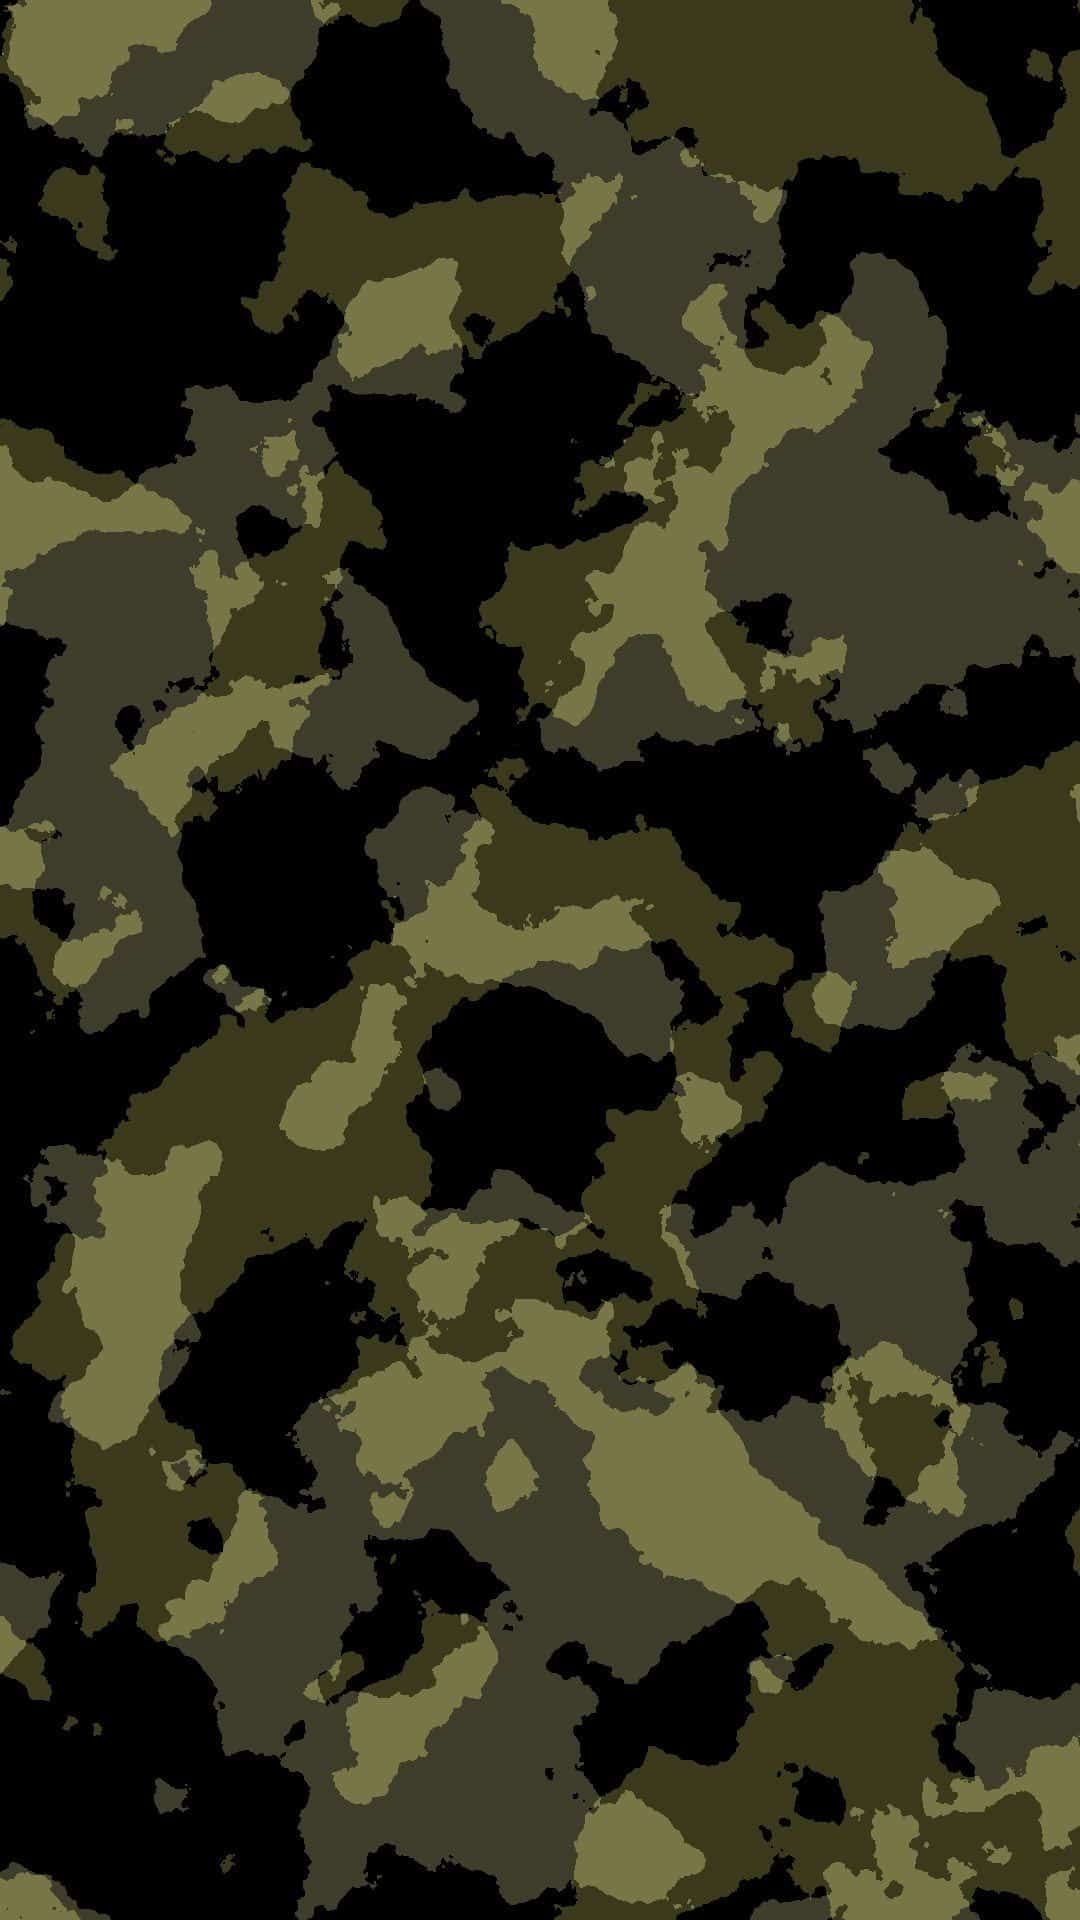 10 Best Camo Wallpaper For Android Full Hd 1080p For Pc Background Camouflage Wallpaper Camo Wallpaper Camoflauge Wallpaper